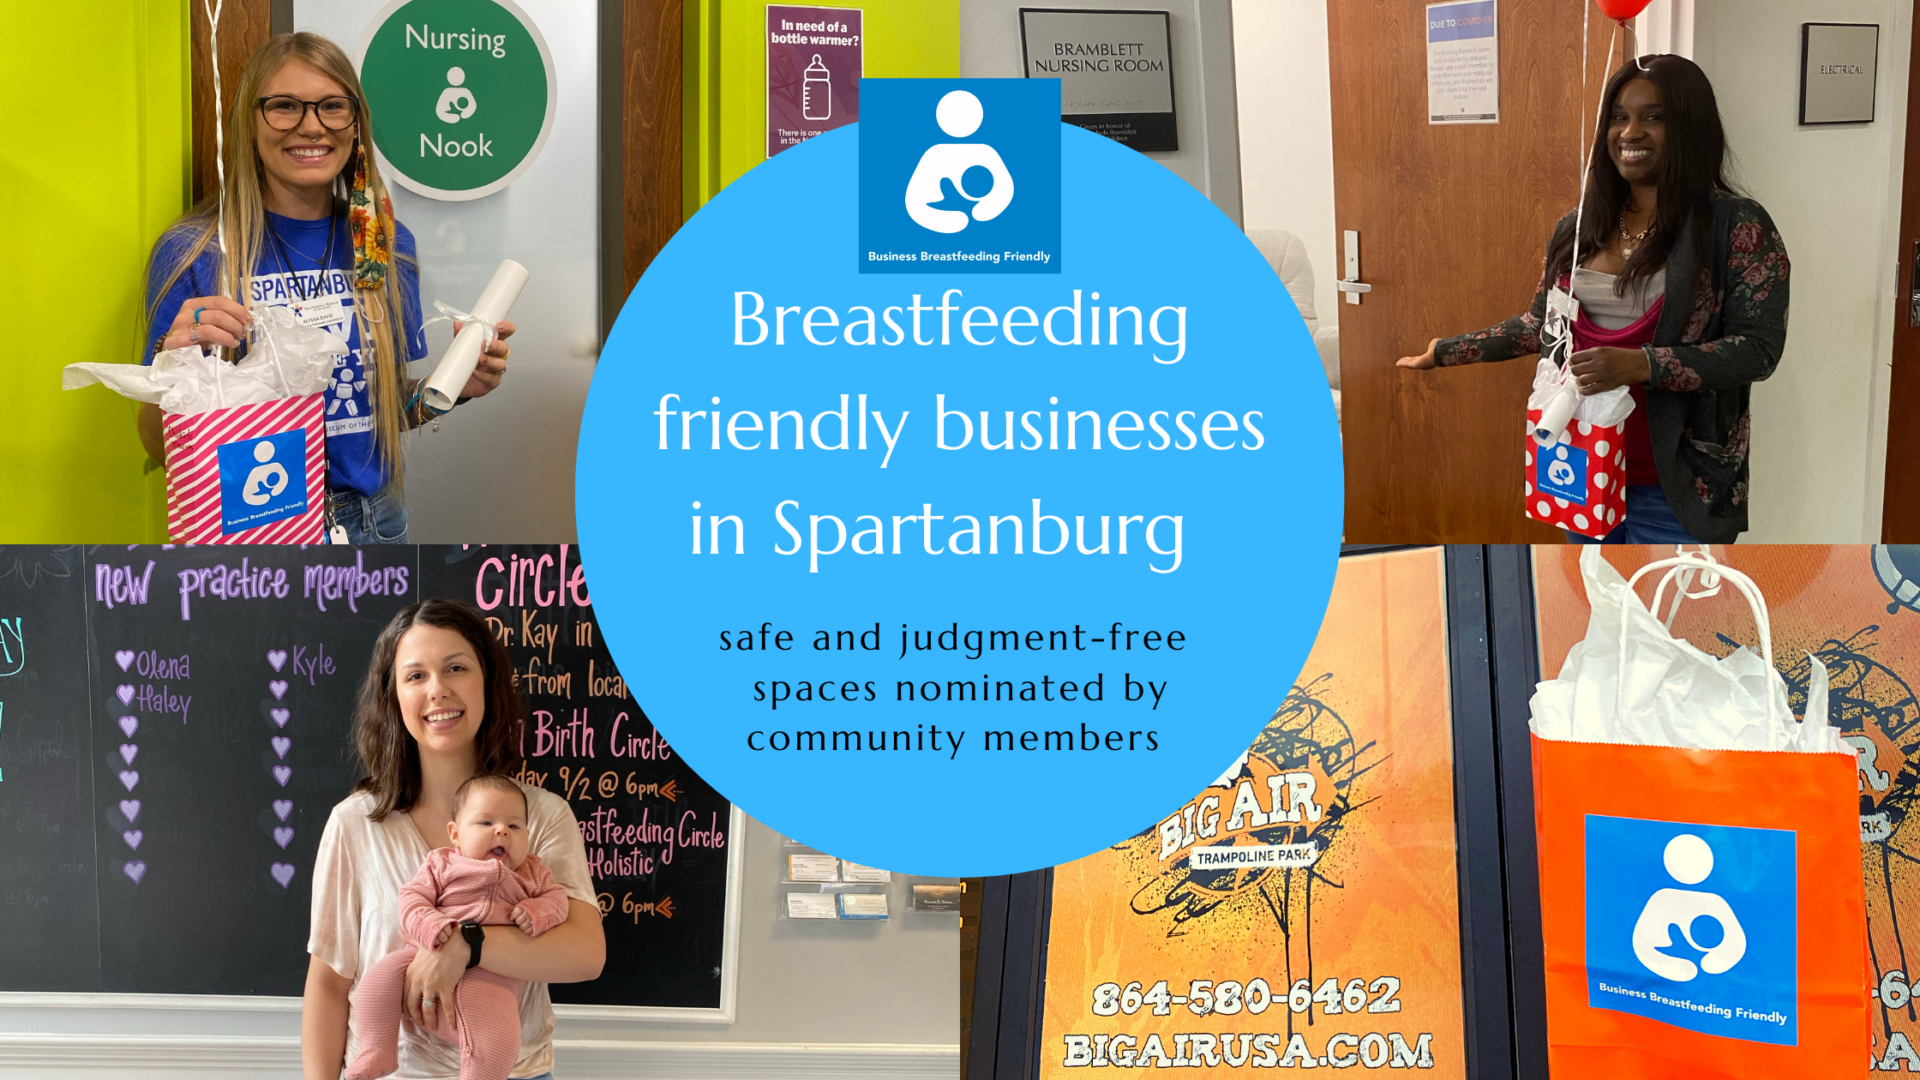 Breastfeeding friendly businesses blog graphic